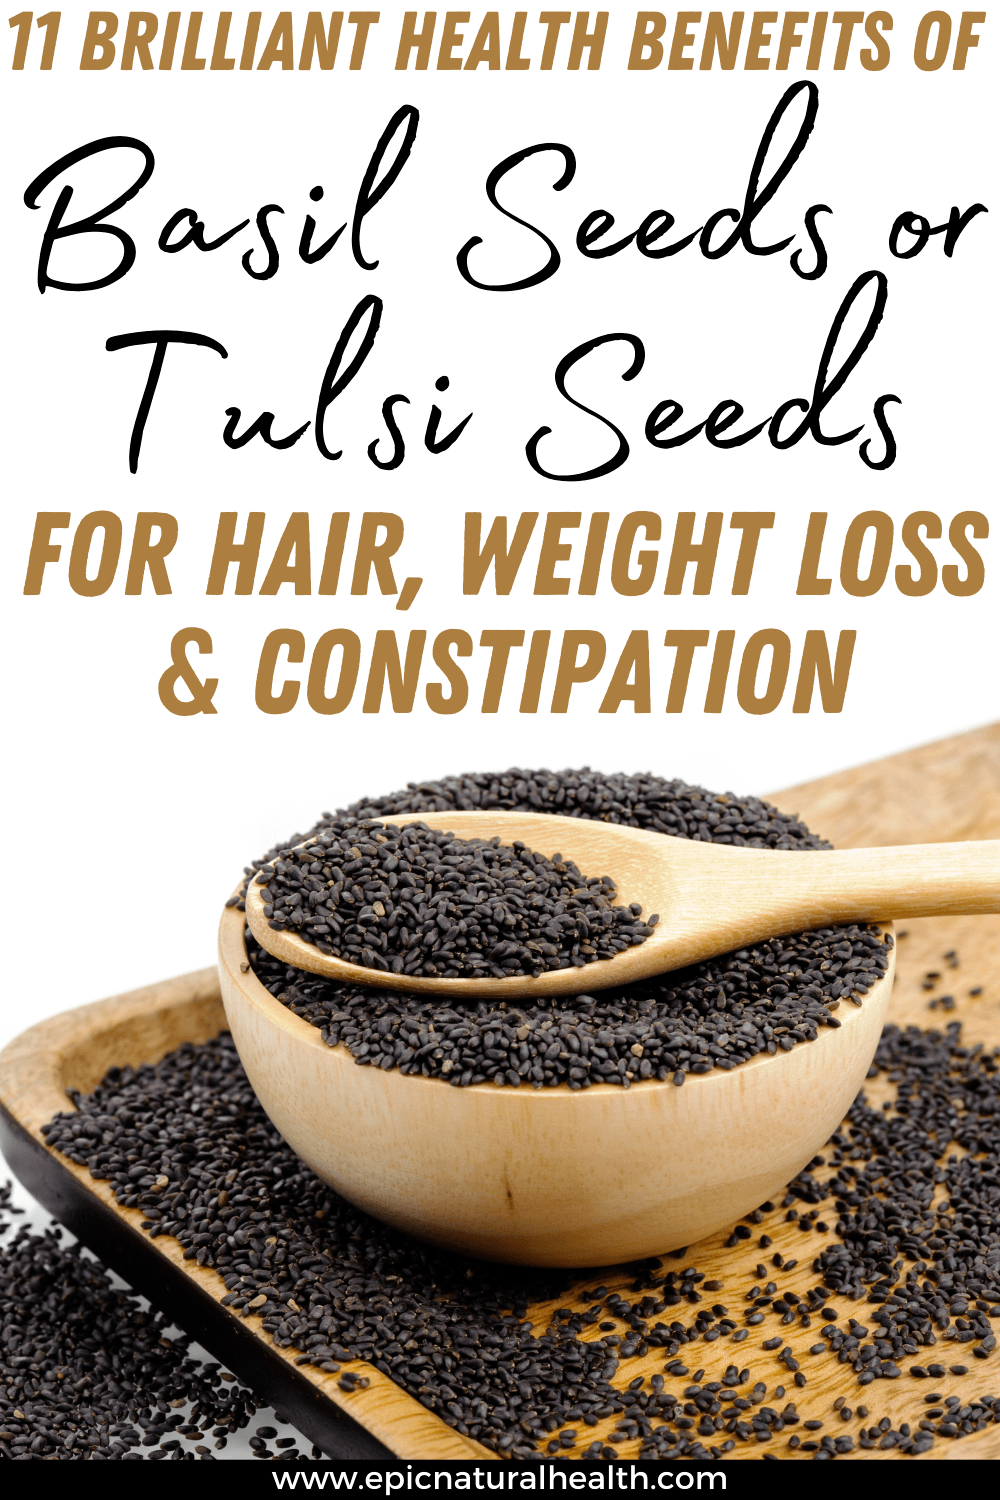 benefits of tulsi seeds for hair weight loss and constipation